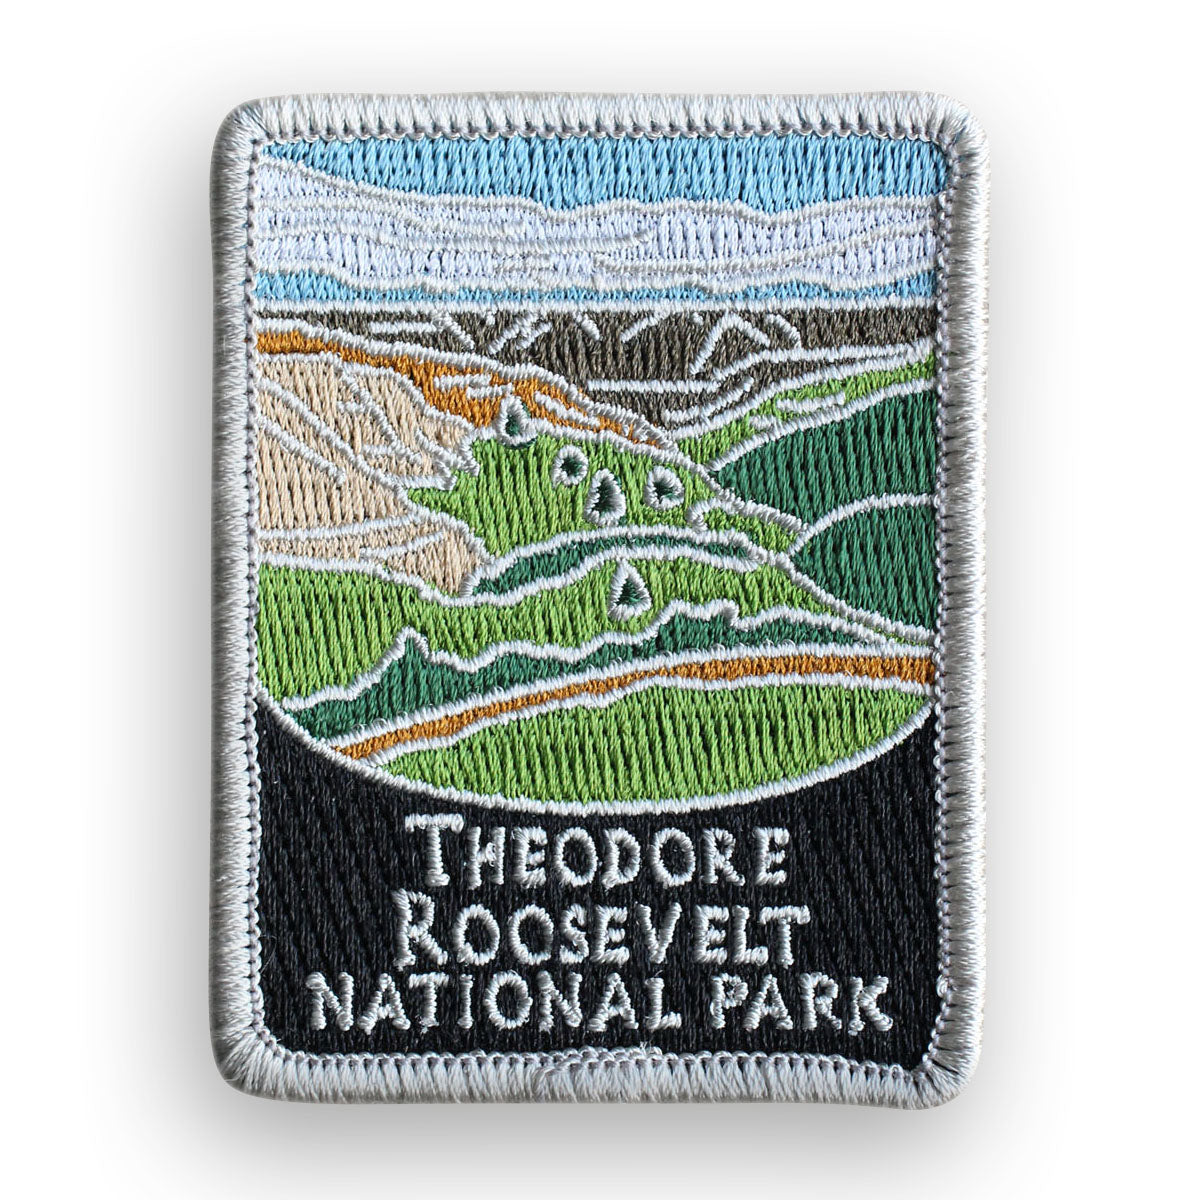 Theodore Roosevelt National Park Traveler Patch